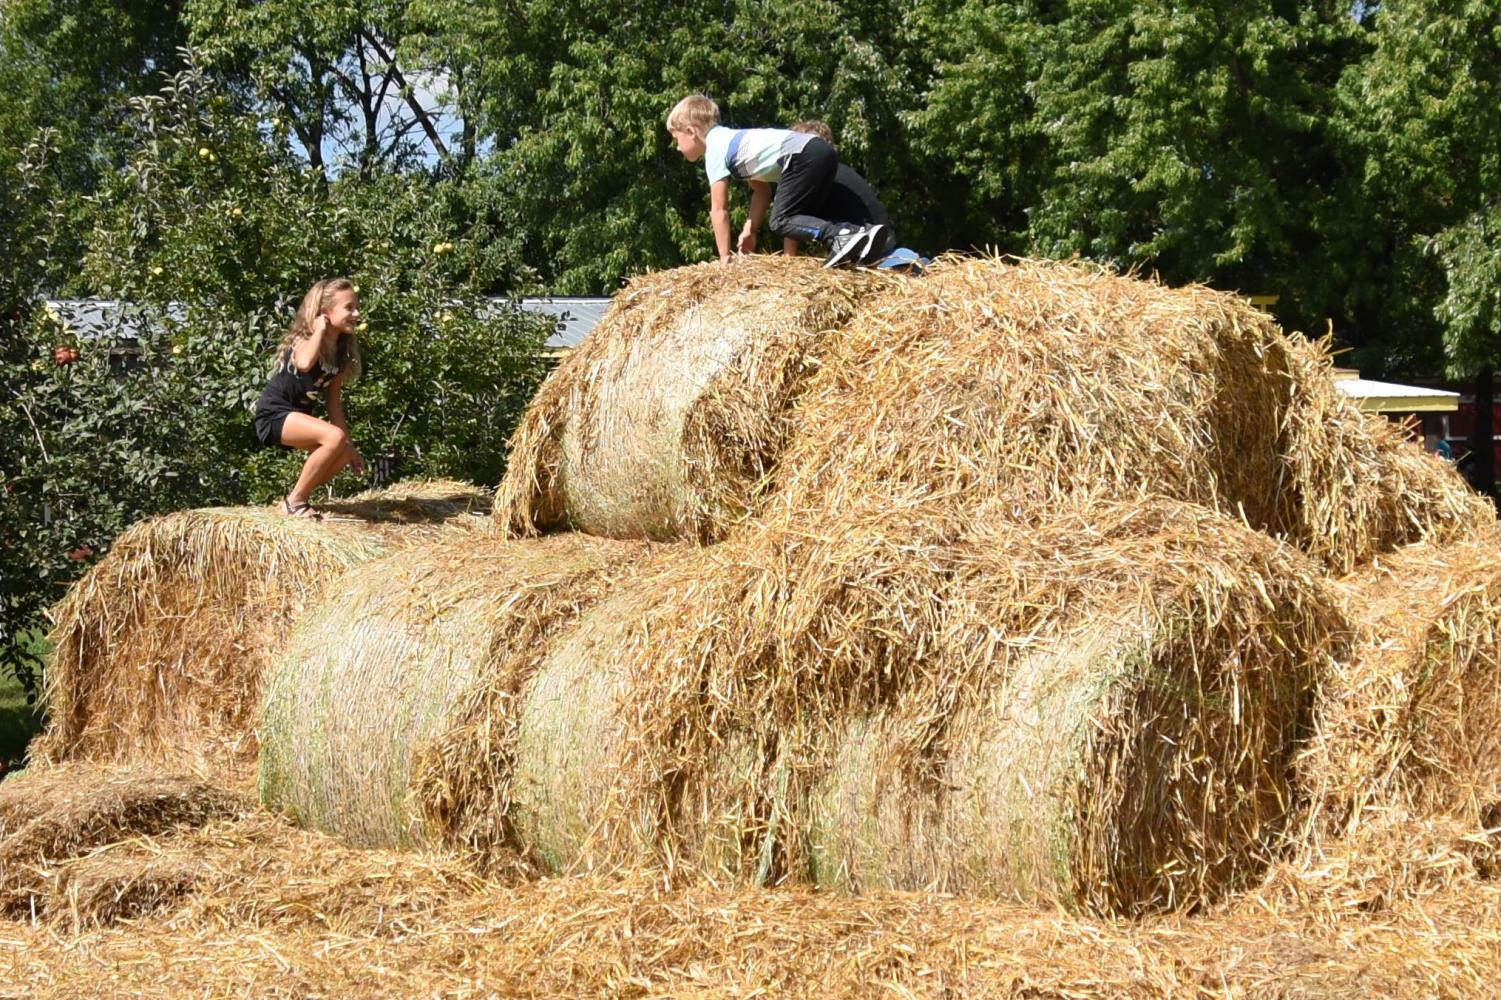 Kids play on the hay stacks at Fall Harvest Orchard Sept. 15. Entering the orchard does not require payment.